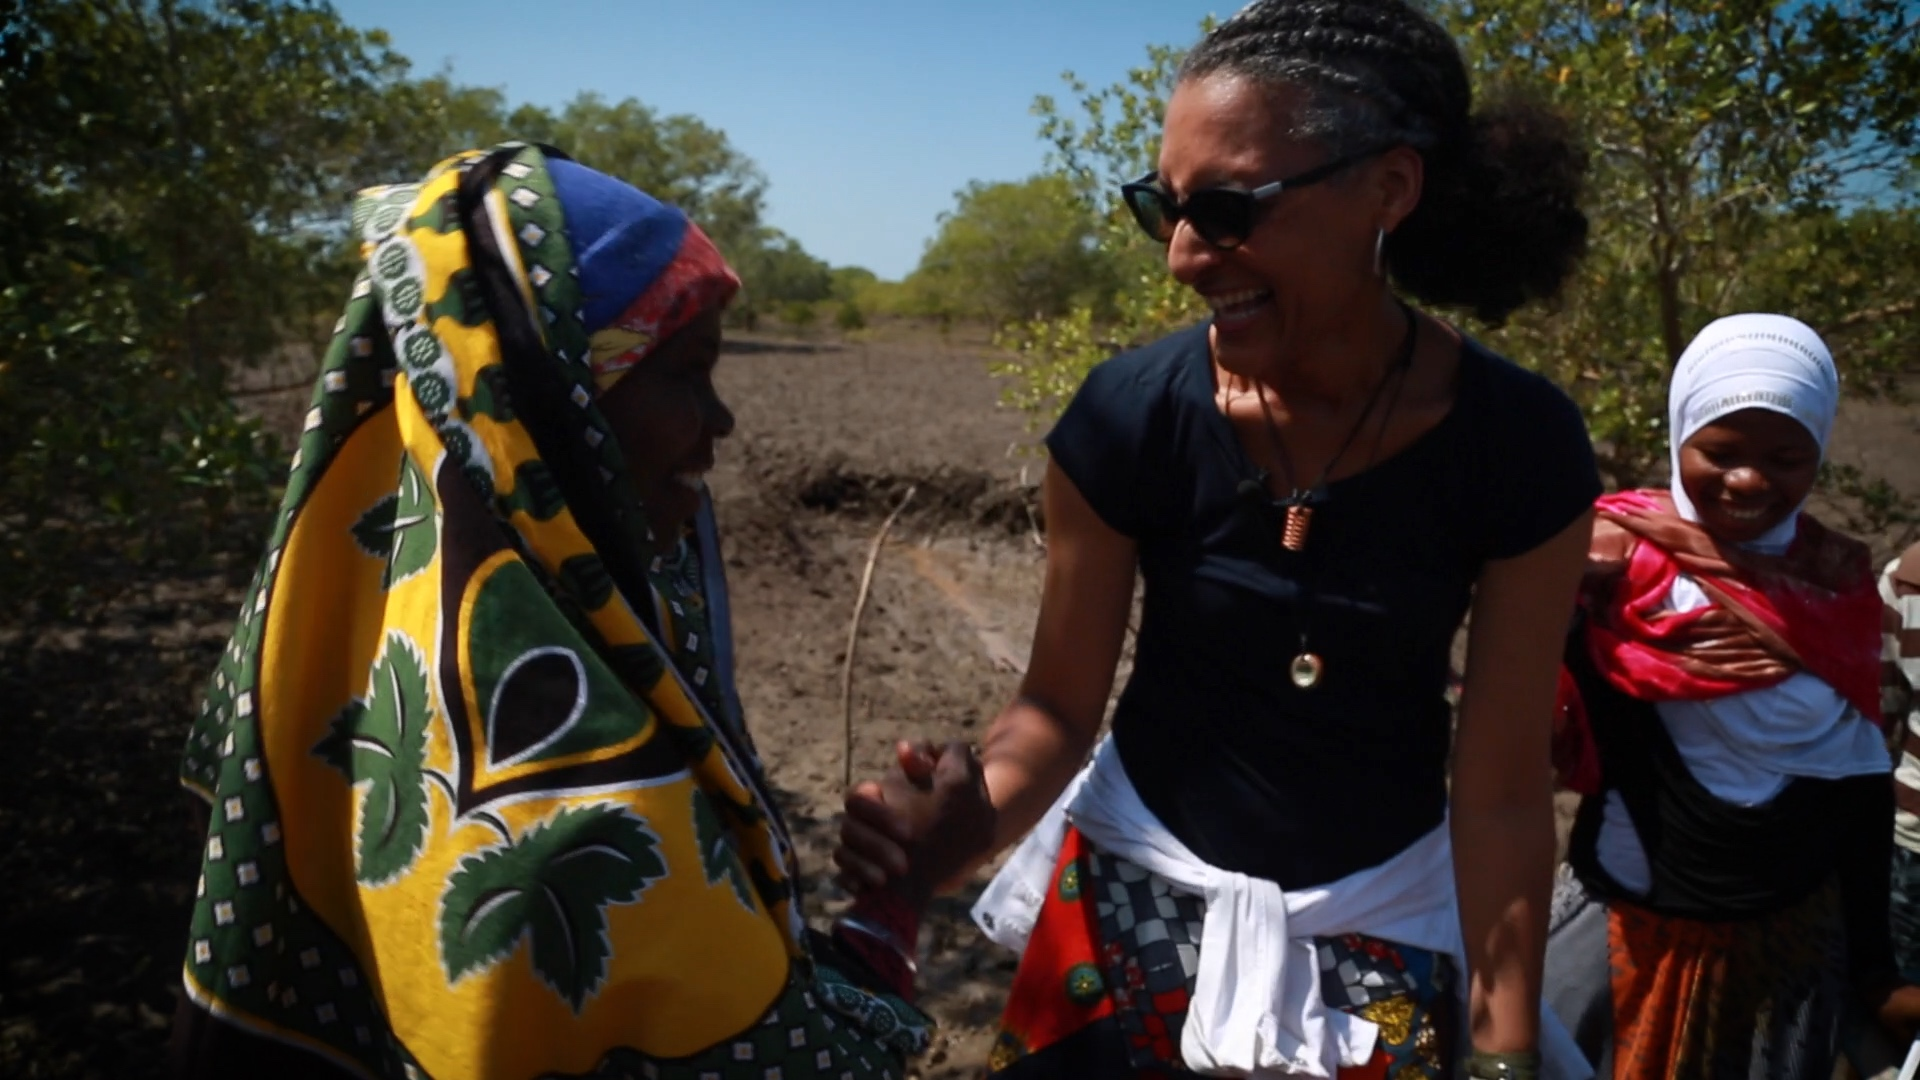 Two smiling women shake hands in a dirt field.